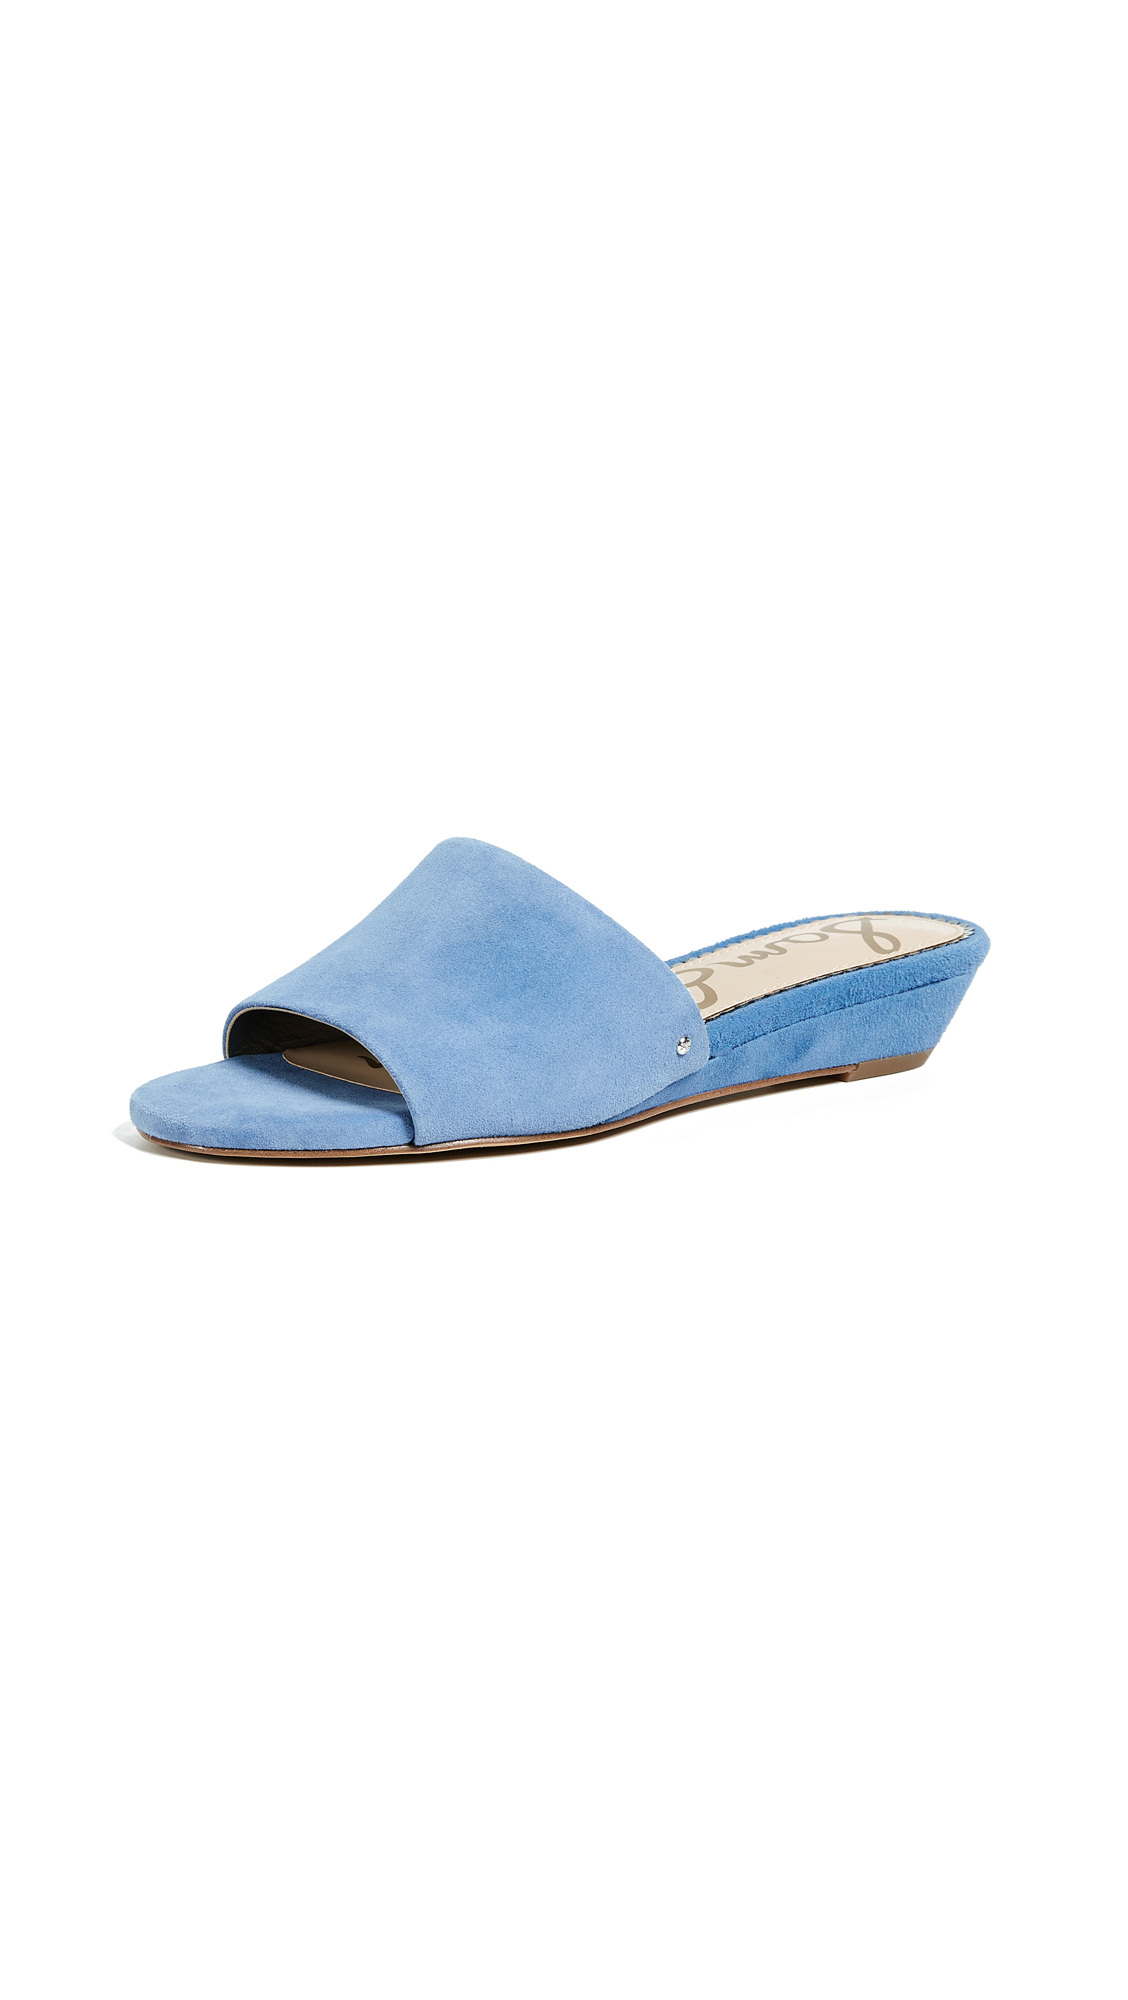 Sam Edelman Liliana Demi Wedge Slides - Denim Blue